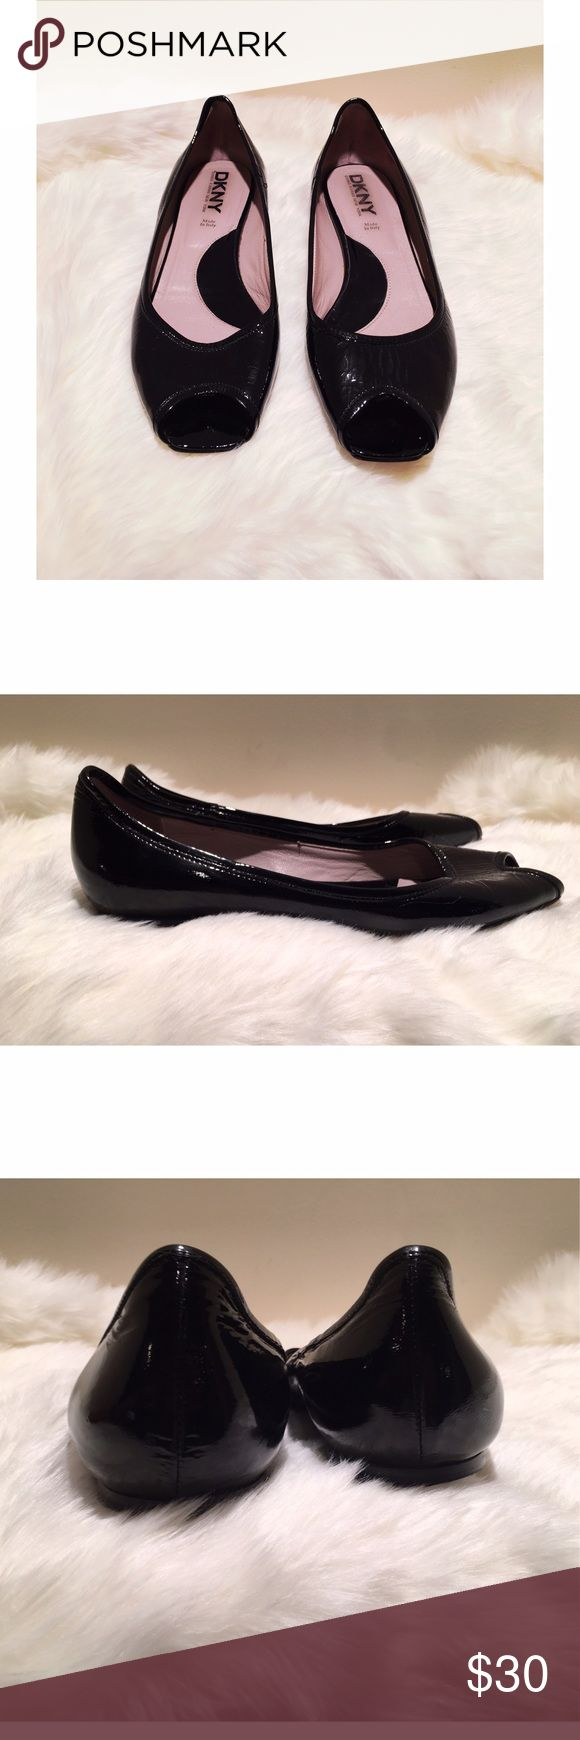 DKNY Patent Leather Peep Toe Flats •the are in great pre worn condition •Peep Toe flats in black •perfect for the office DKNY Shoes Flats & Loafers